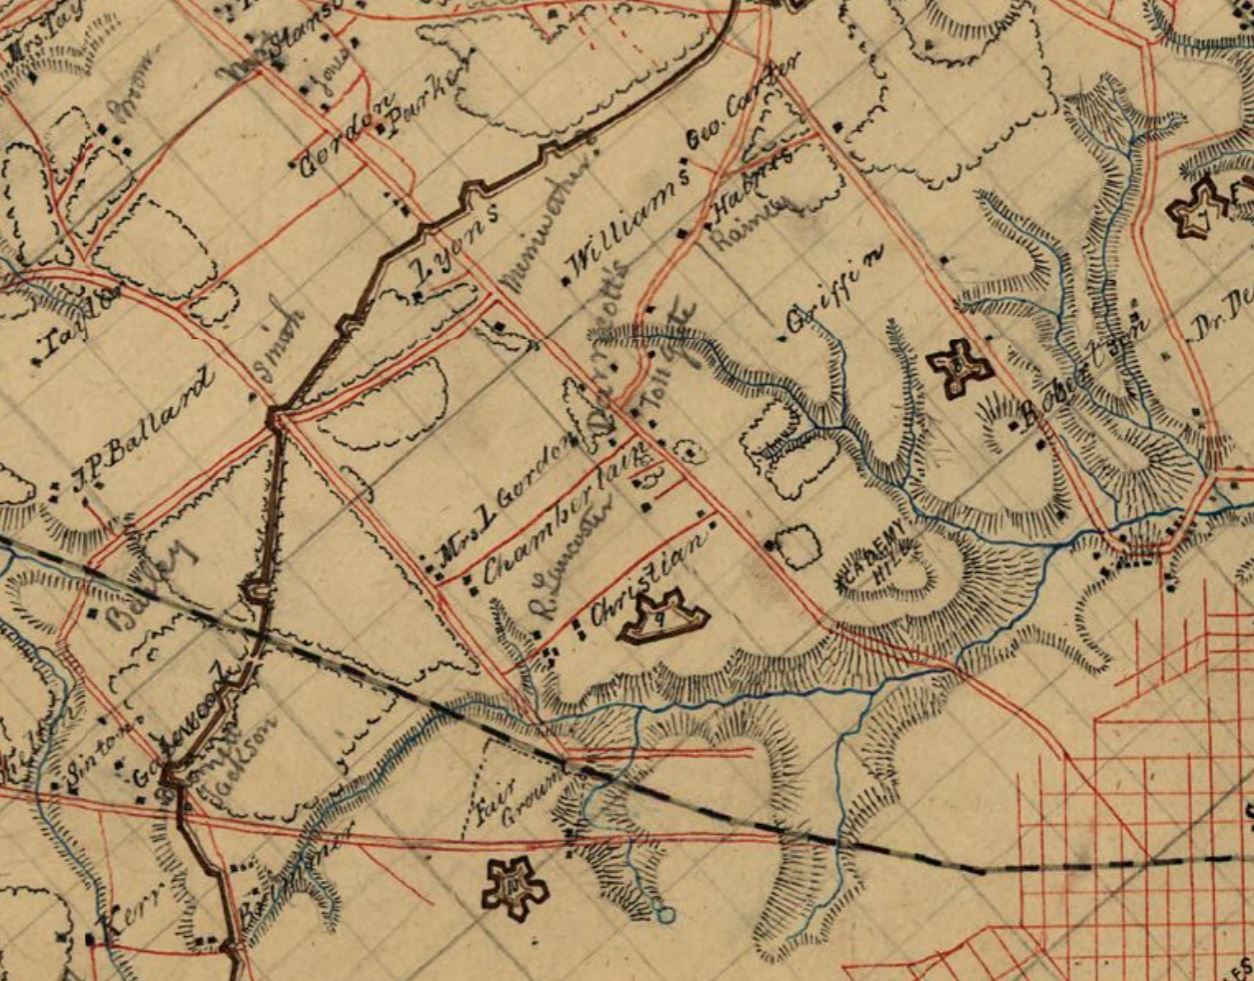 1867 map of richmond by michie reproduced from gilmer map of 1864 meriwether is pencilled next to the westwood cottage on the map